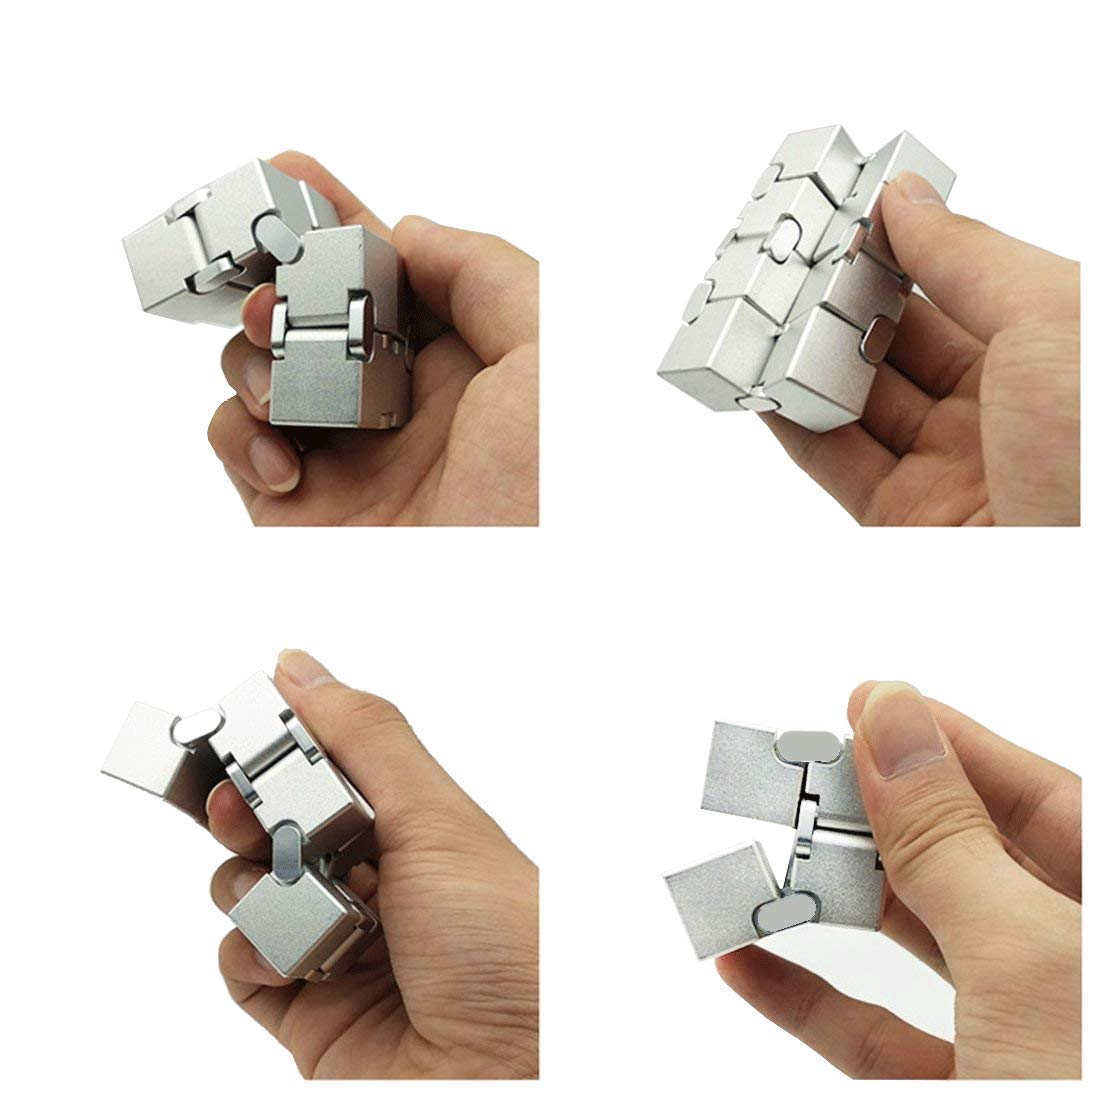 Metal Infinity Cube, Fidget Cube New Version Fidget Finger Toys, Infinity Turn Spin Cube EDC Fidgeting for ADD, ADHD, Anxiety, and Autism Adult and Children. by SULCMAG (Image #3)